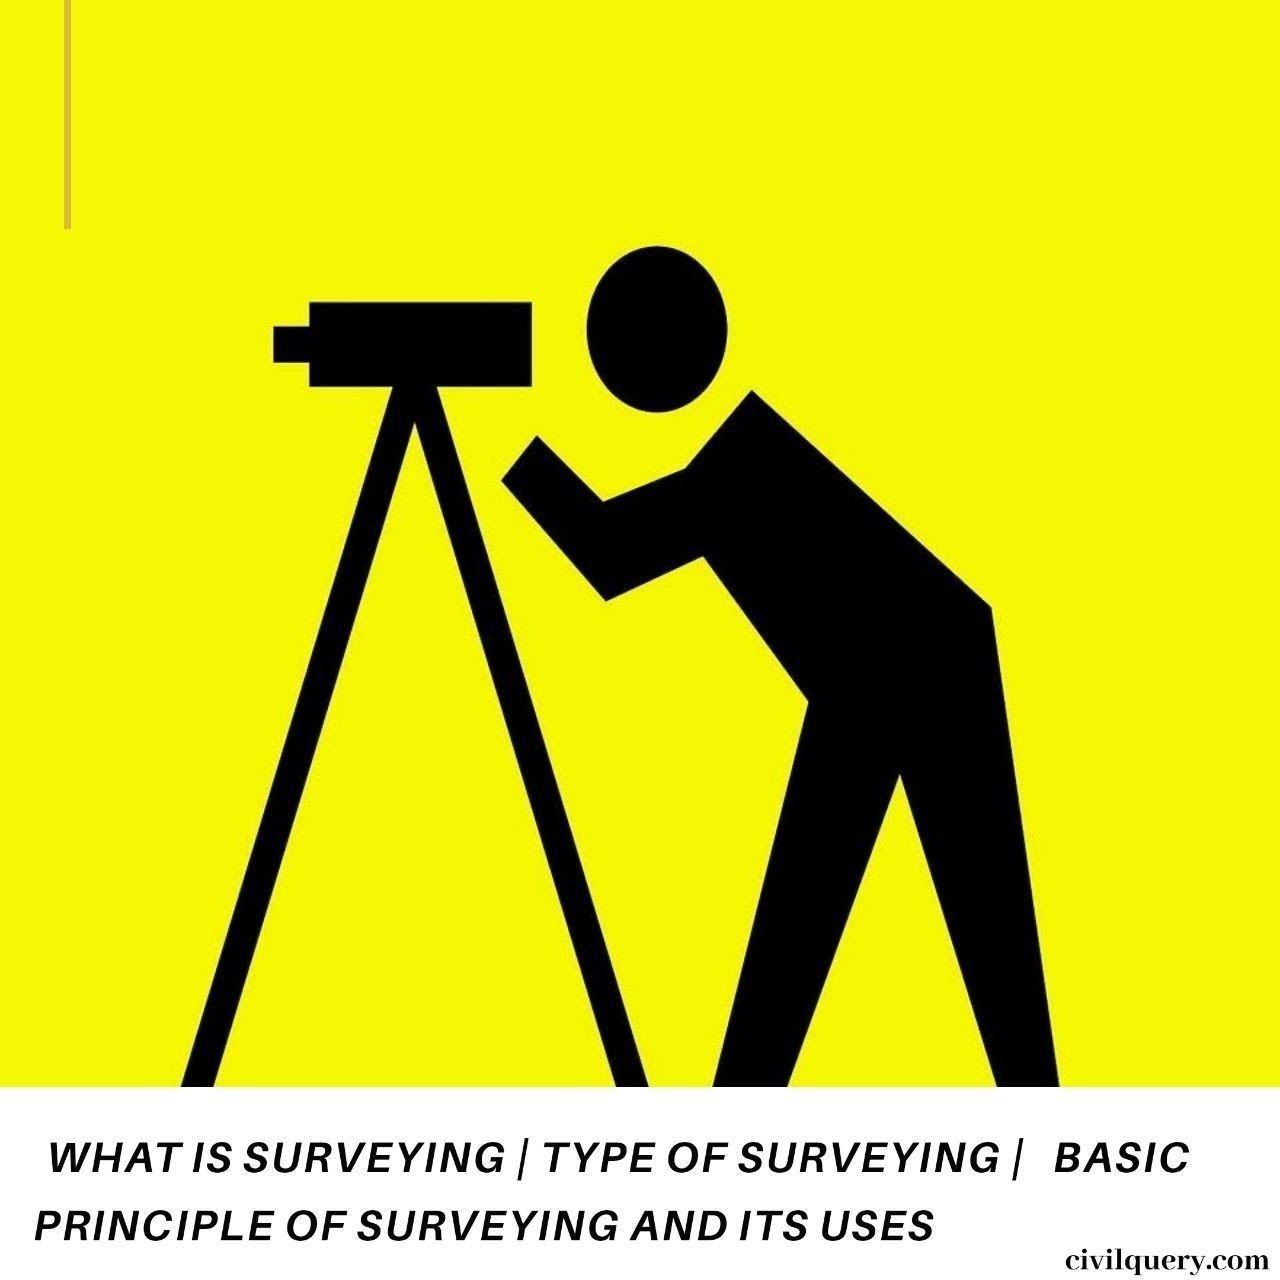 What is surveying